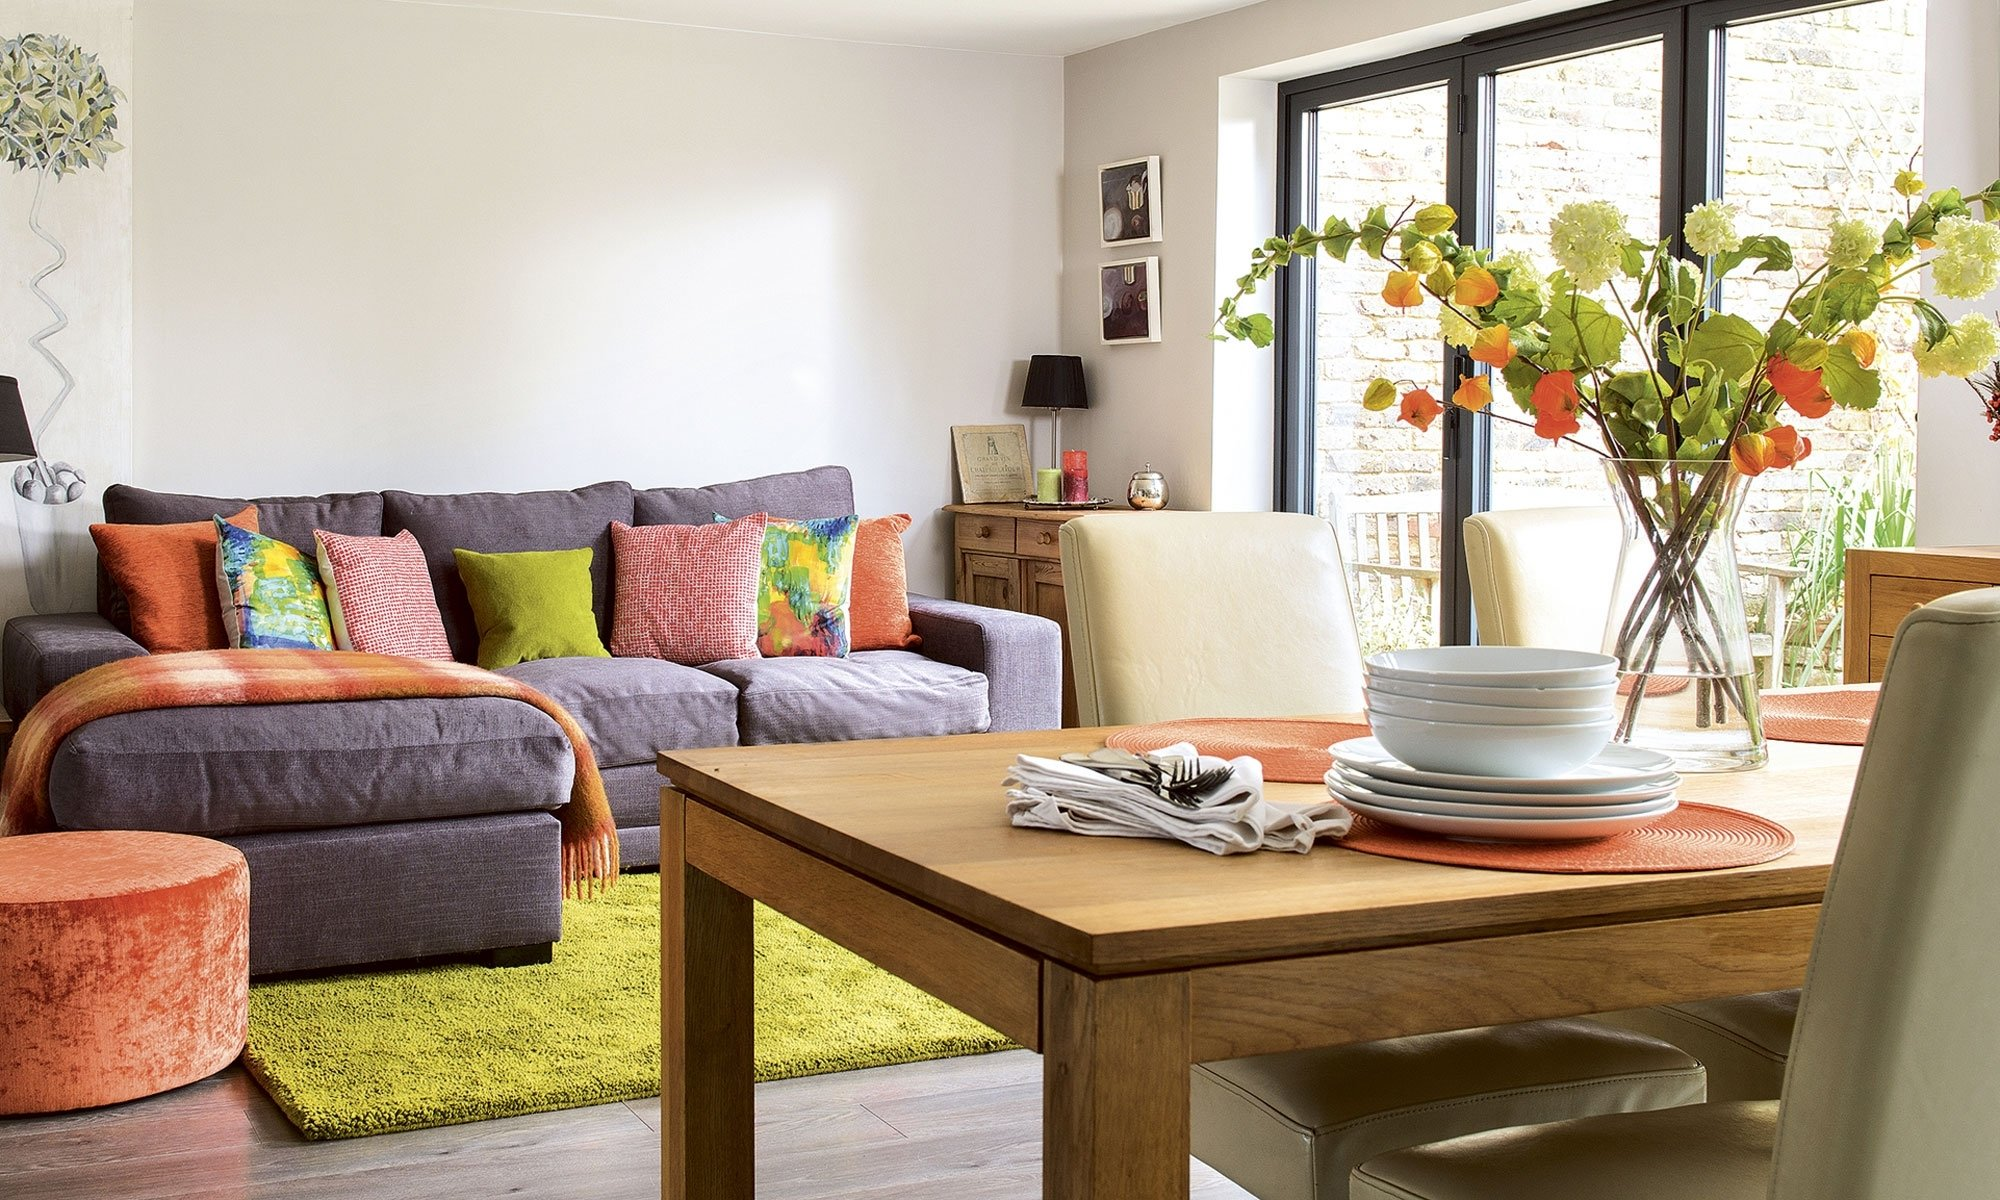 10 Lovely Living Room Decorating Ideas Pictures living room ideas designs and inspiration ideal home 20